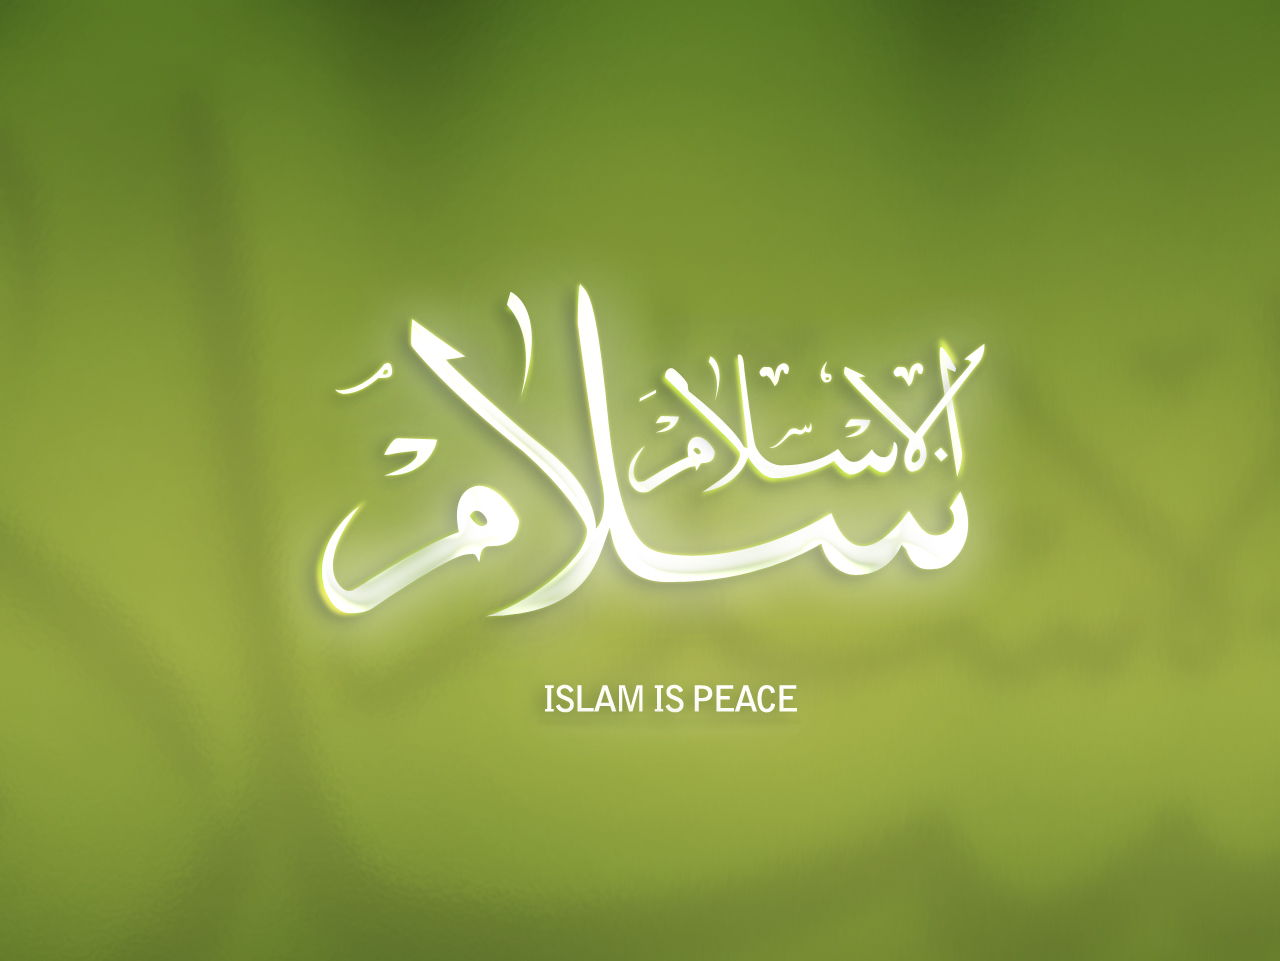 Islam: practices-Chapter 8, Sections: 6, 7, 8, 9 & 10.